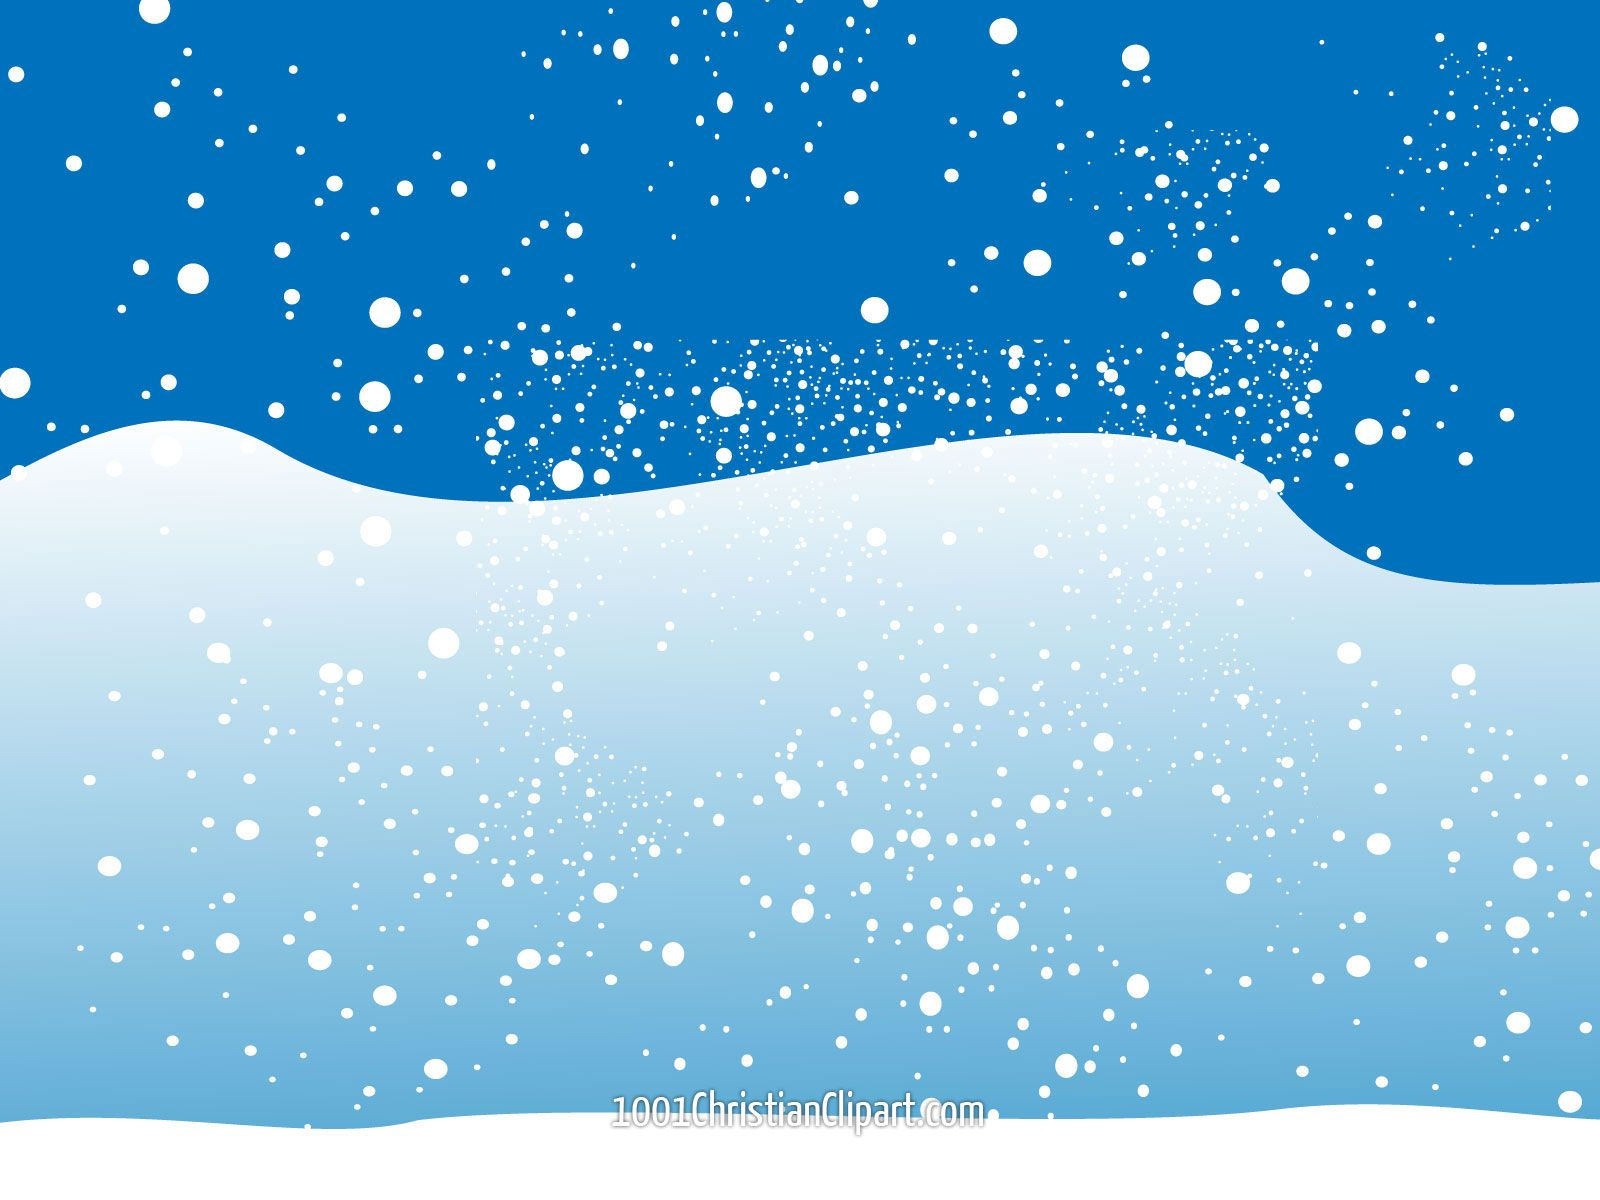 no more snow clipart - photo #40